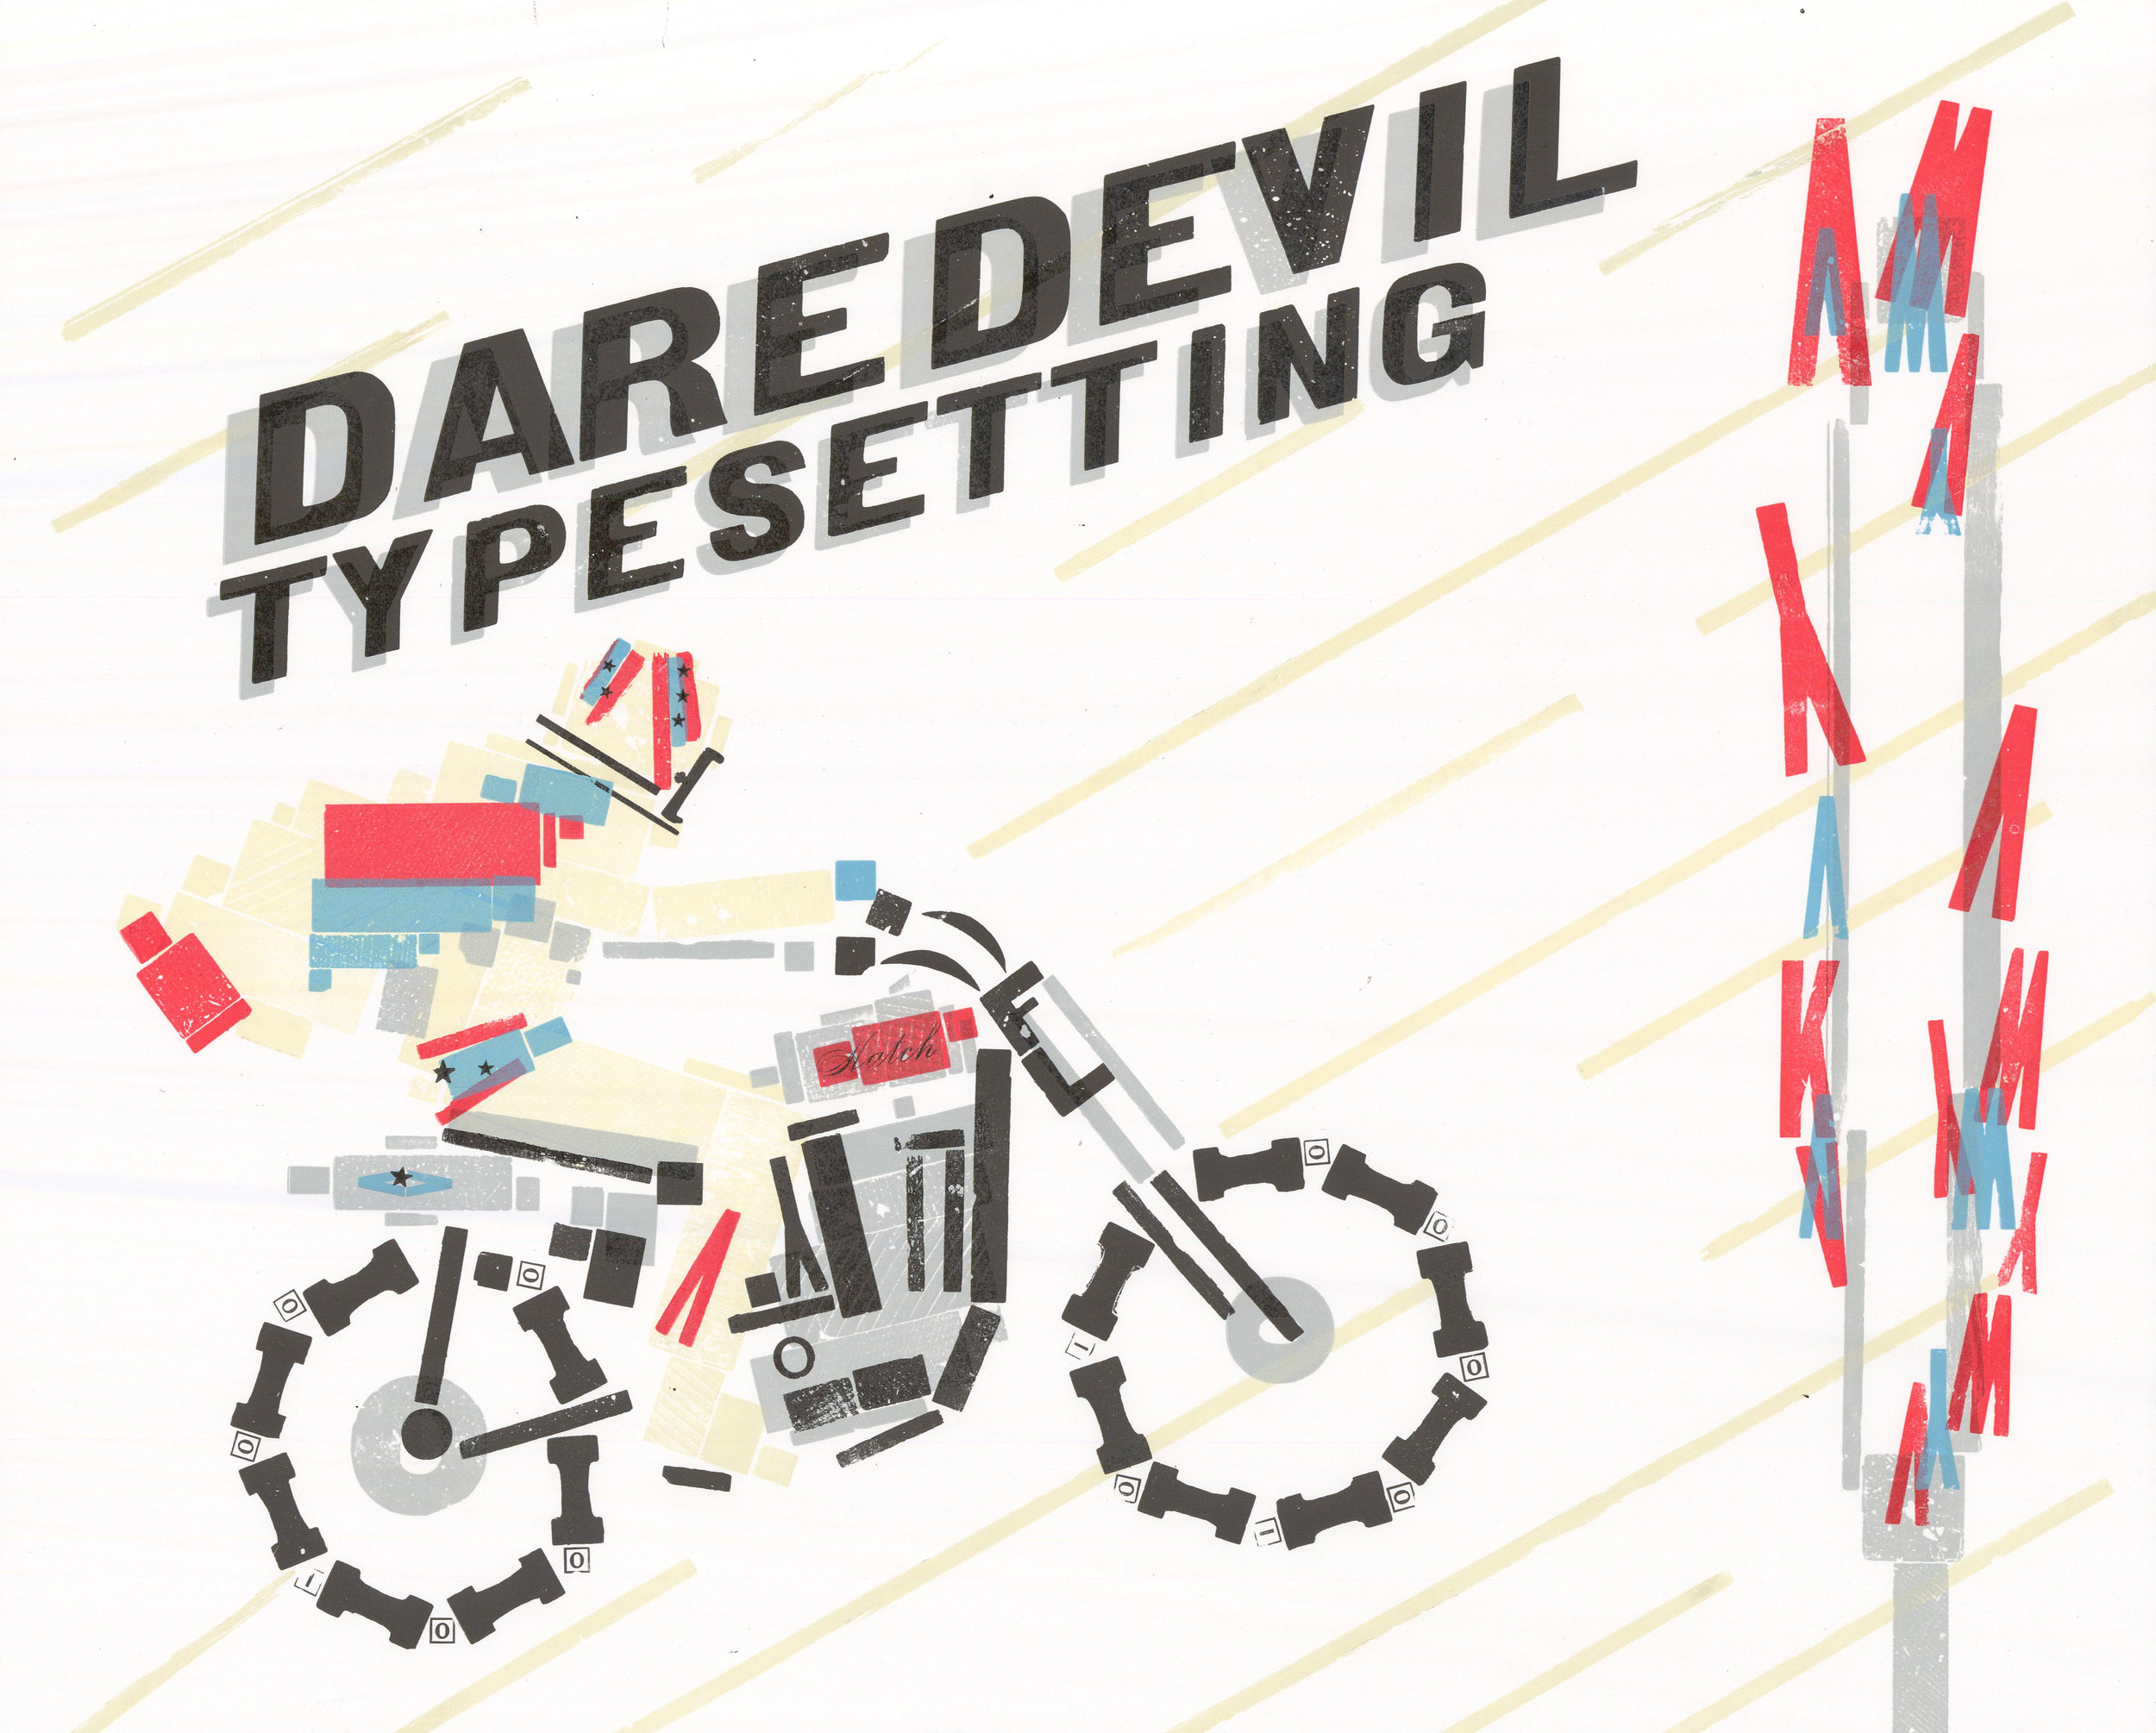 Daredevil Typesetting.jpg